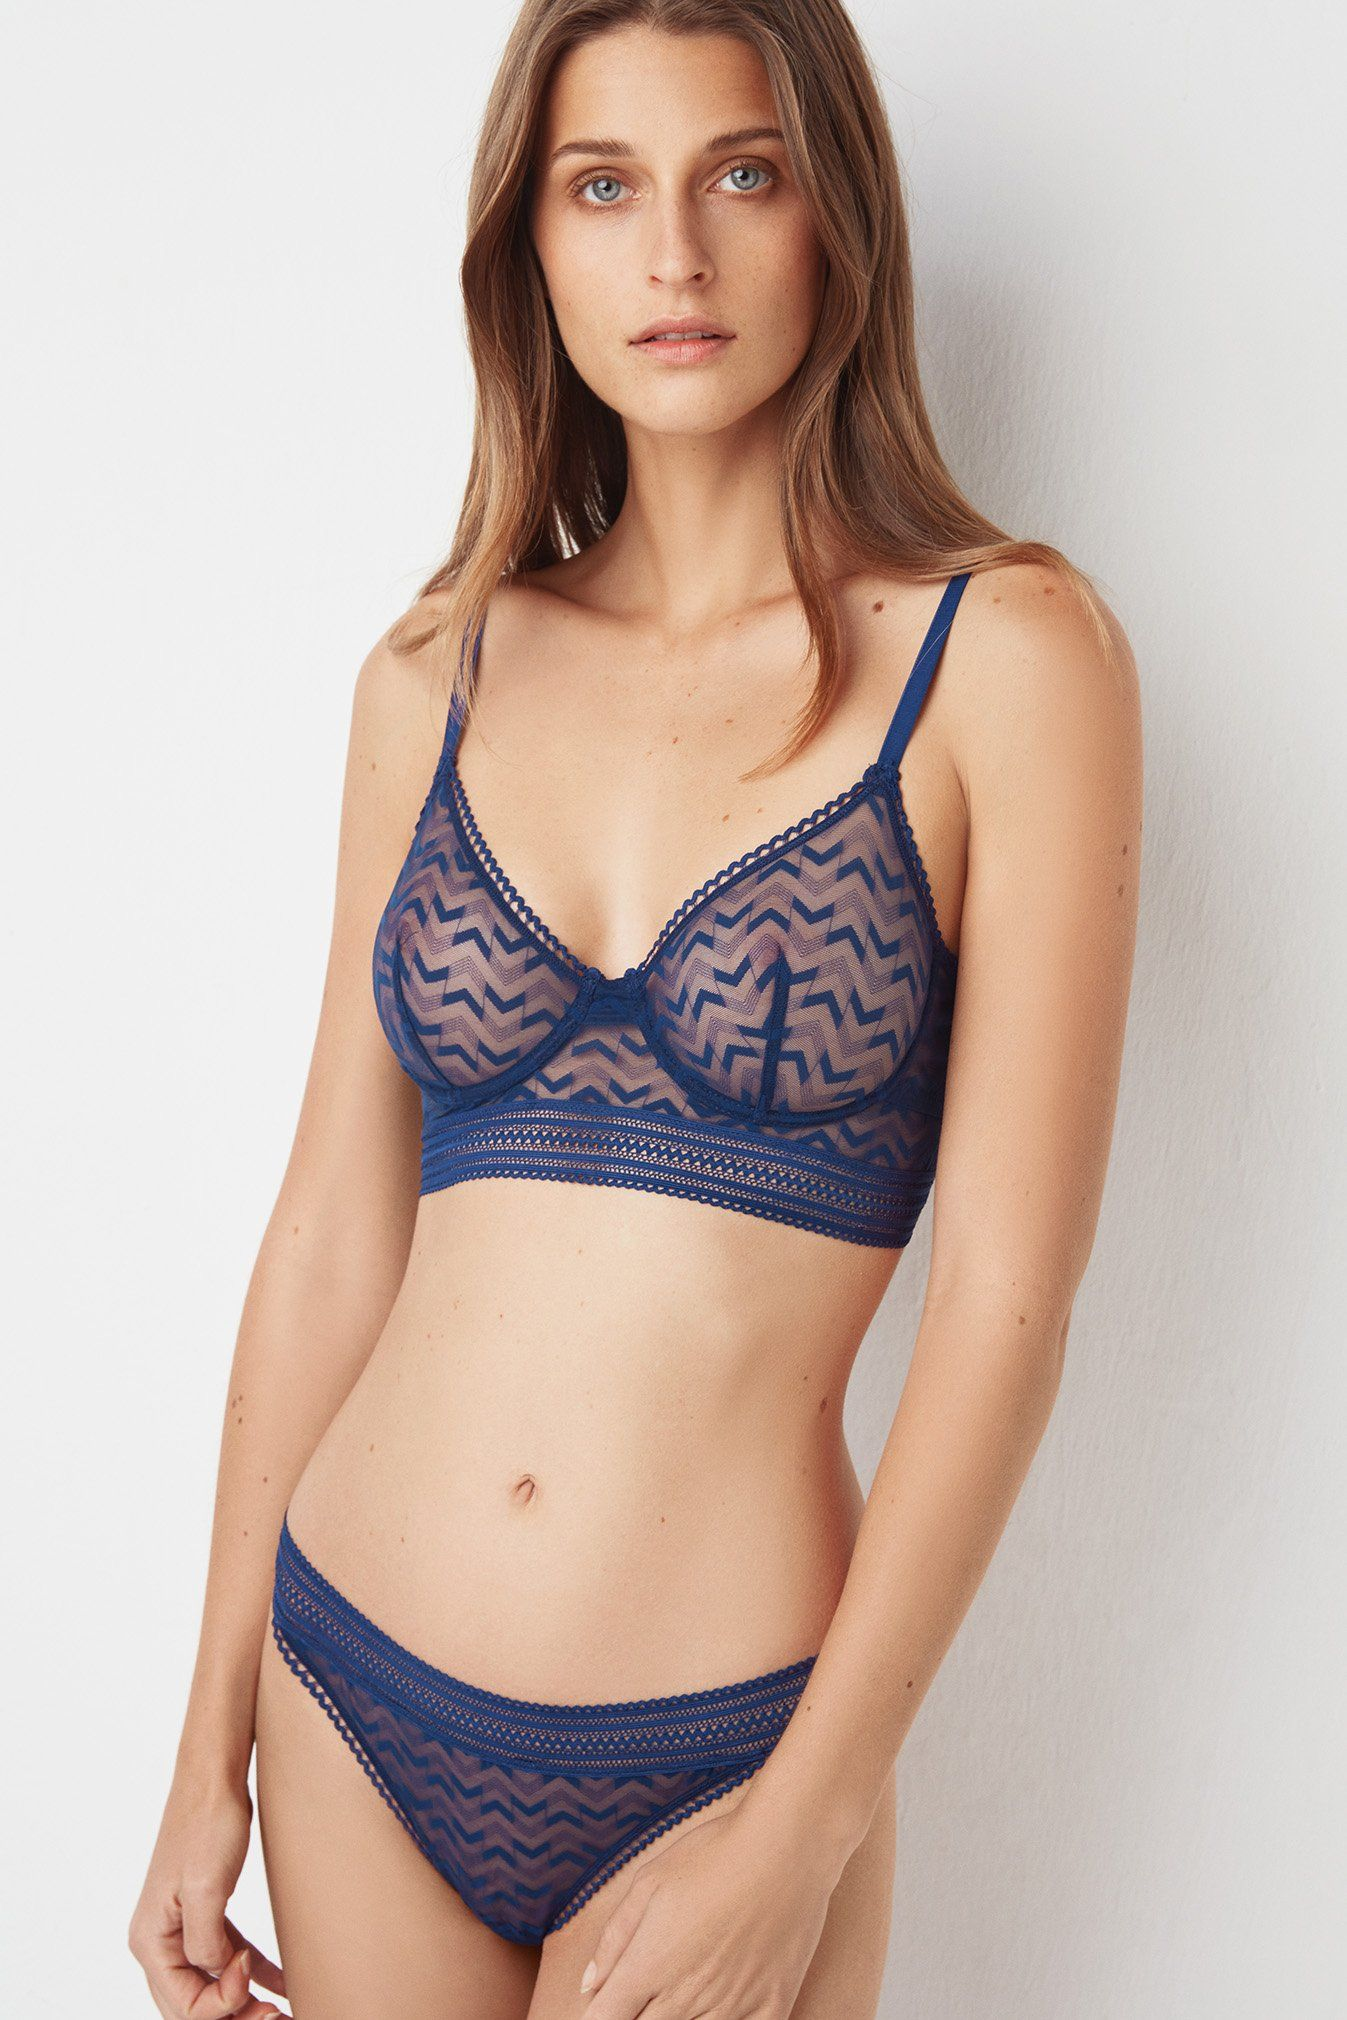 3a033facac6 Add new dimension to your fall lingerie look with the Boomerang longline  bra and matching panties by ELSE. #chevron #lingerie #bra #panties #ELSE